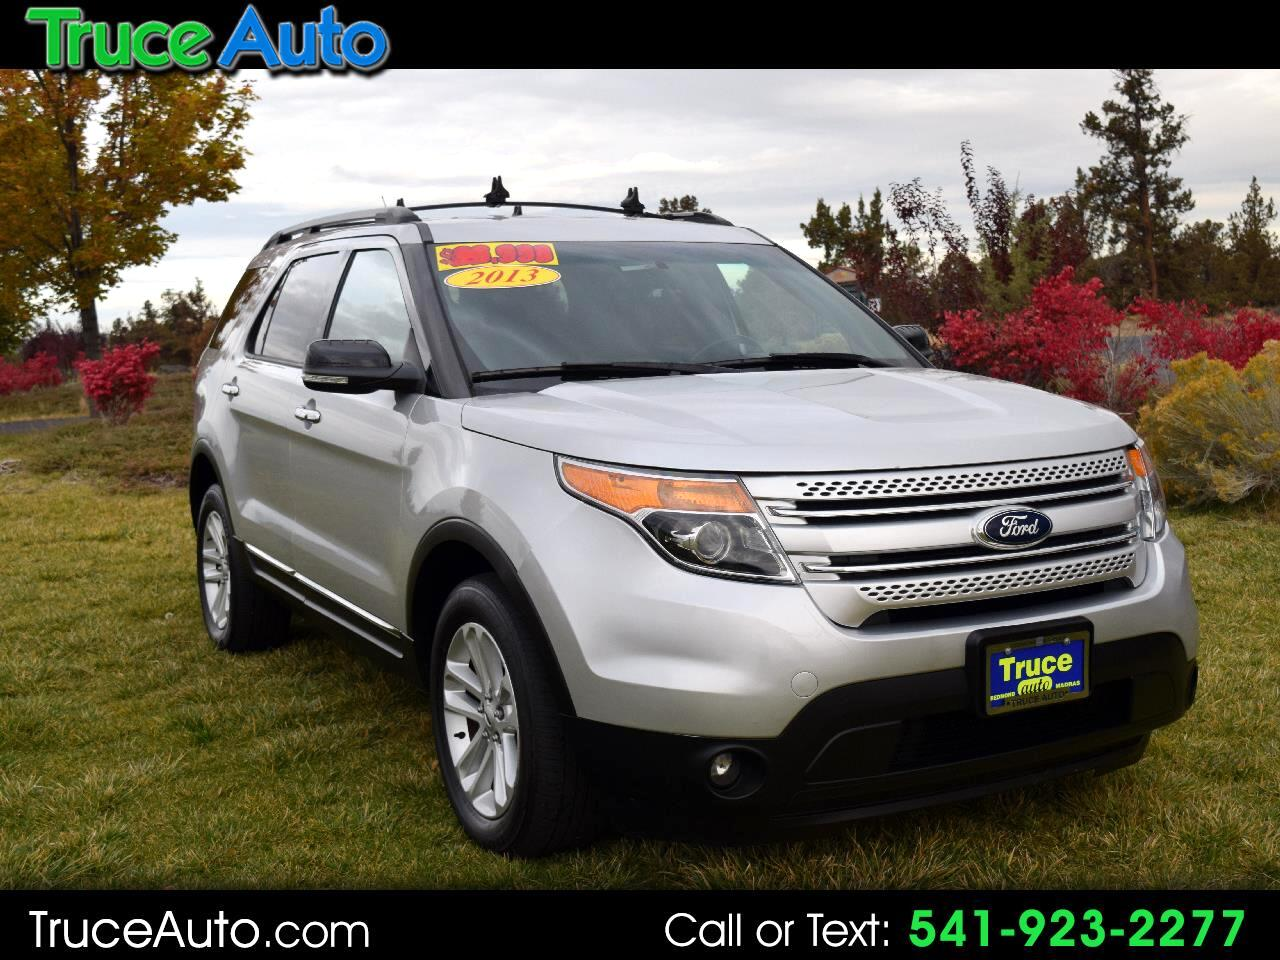 2013 Ford Explorer XLT 4WD ***ONE OWNER***LOW MILE***THIRD ROW***